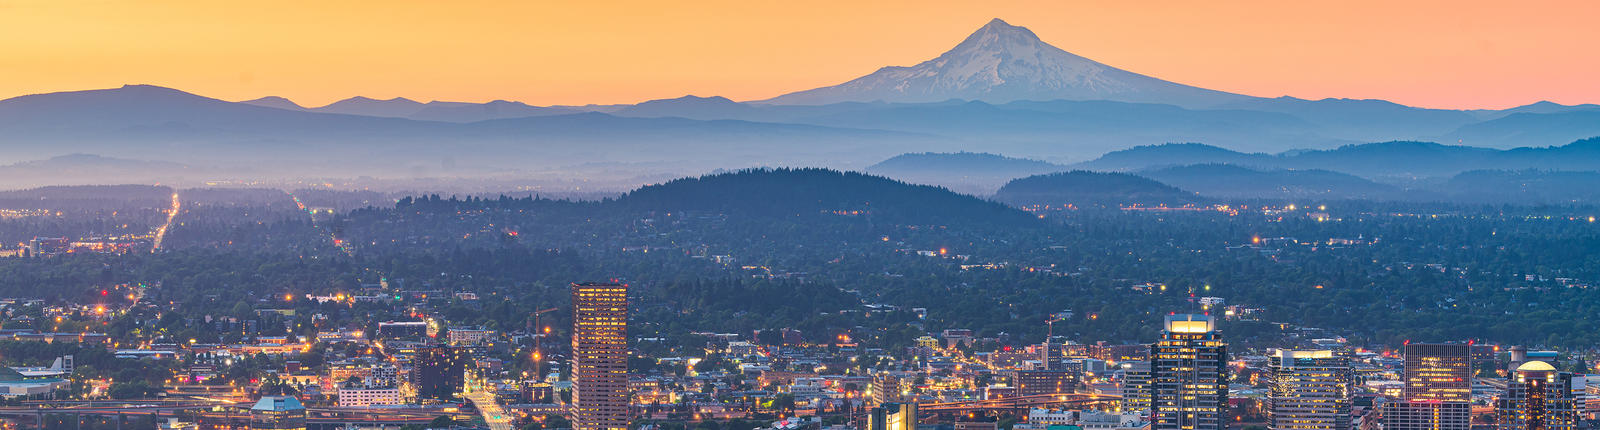 Inspirational photo of photo with Mt. Hood at unrise